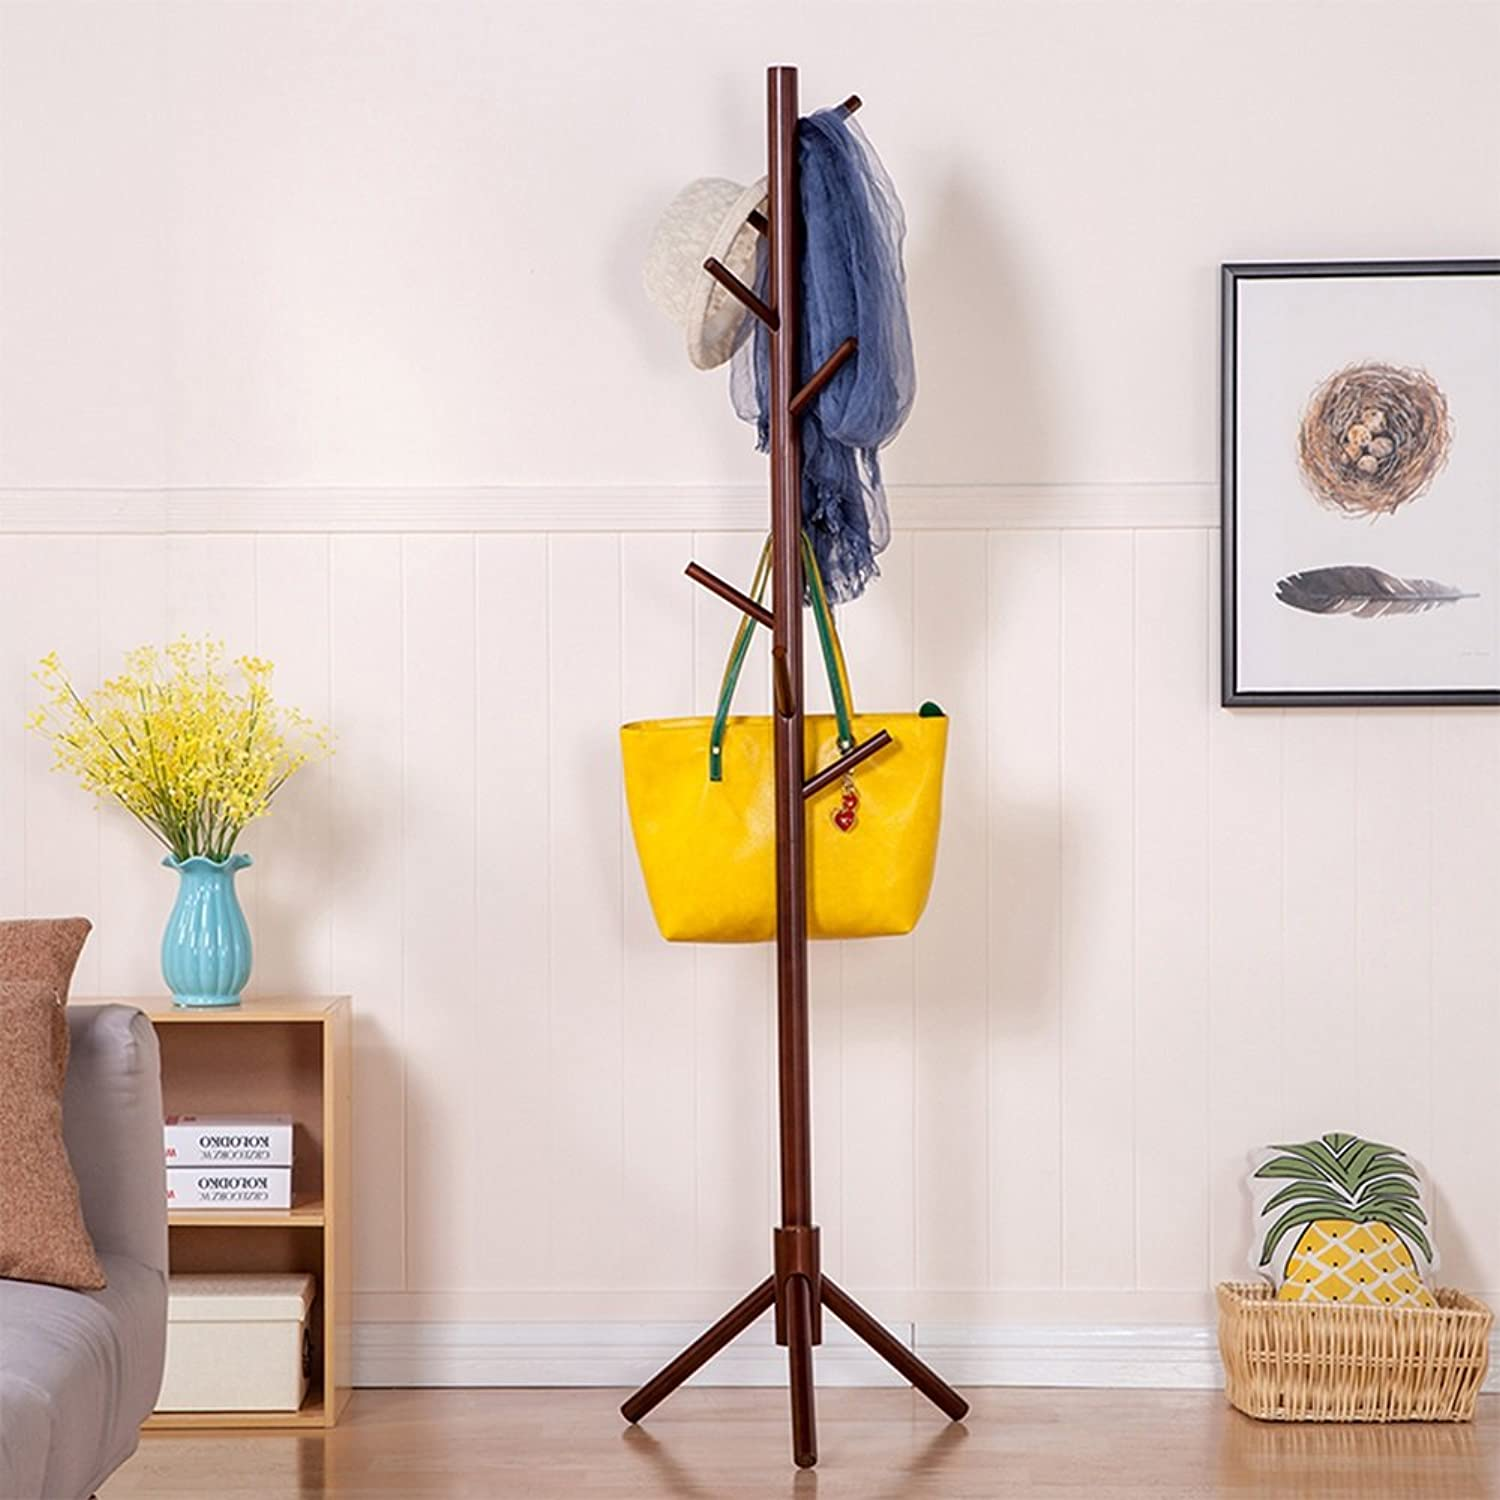 XINGZHE Coat Rack - Simple Modern Solid Wood 8 Coat Rack, Home, Living Room, Bedroom Storage Coat Rack Coat Rack (color   B)